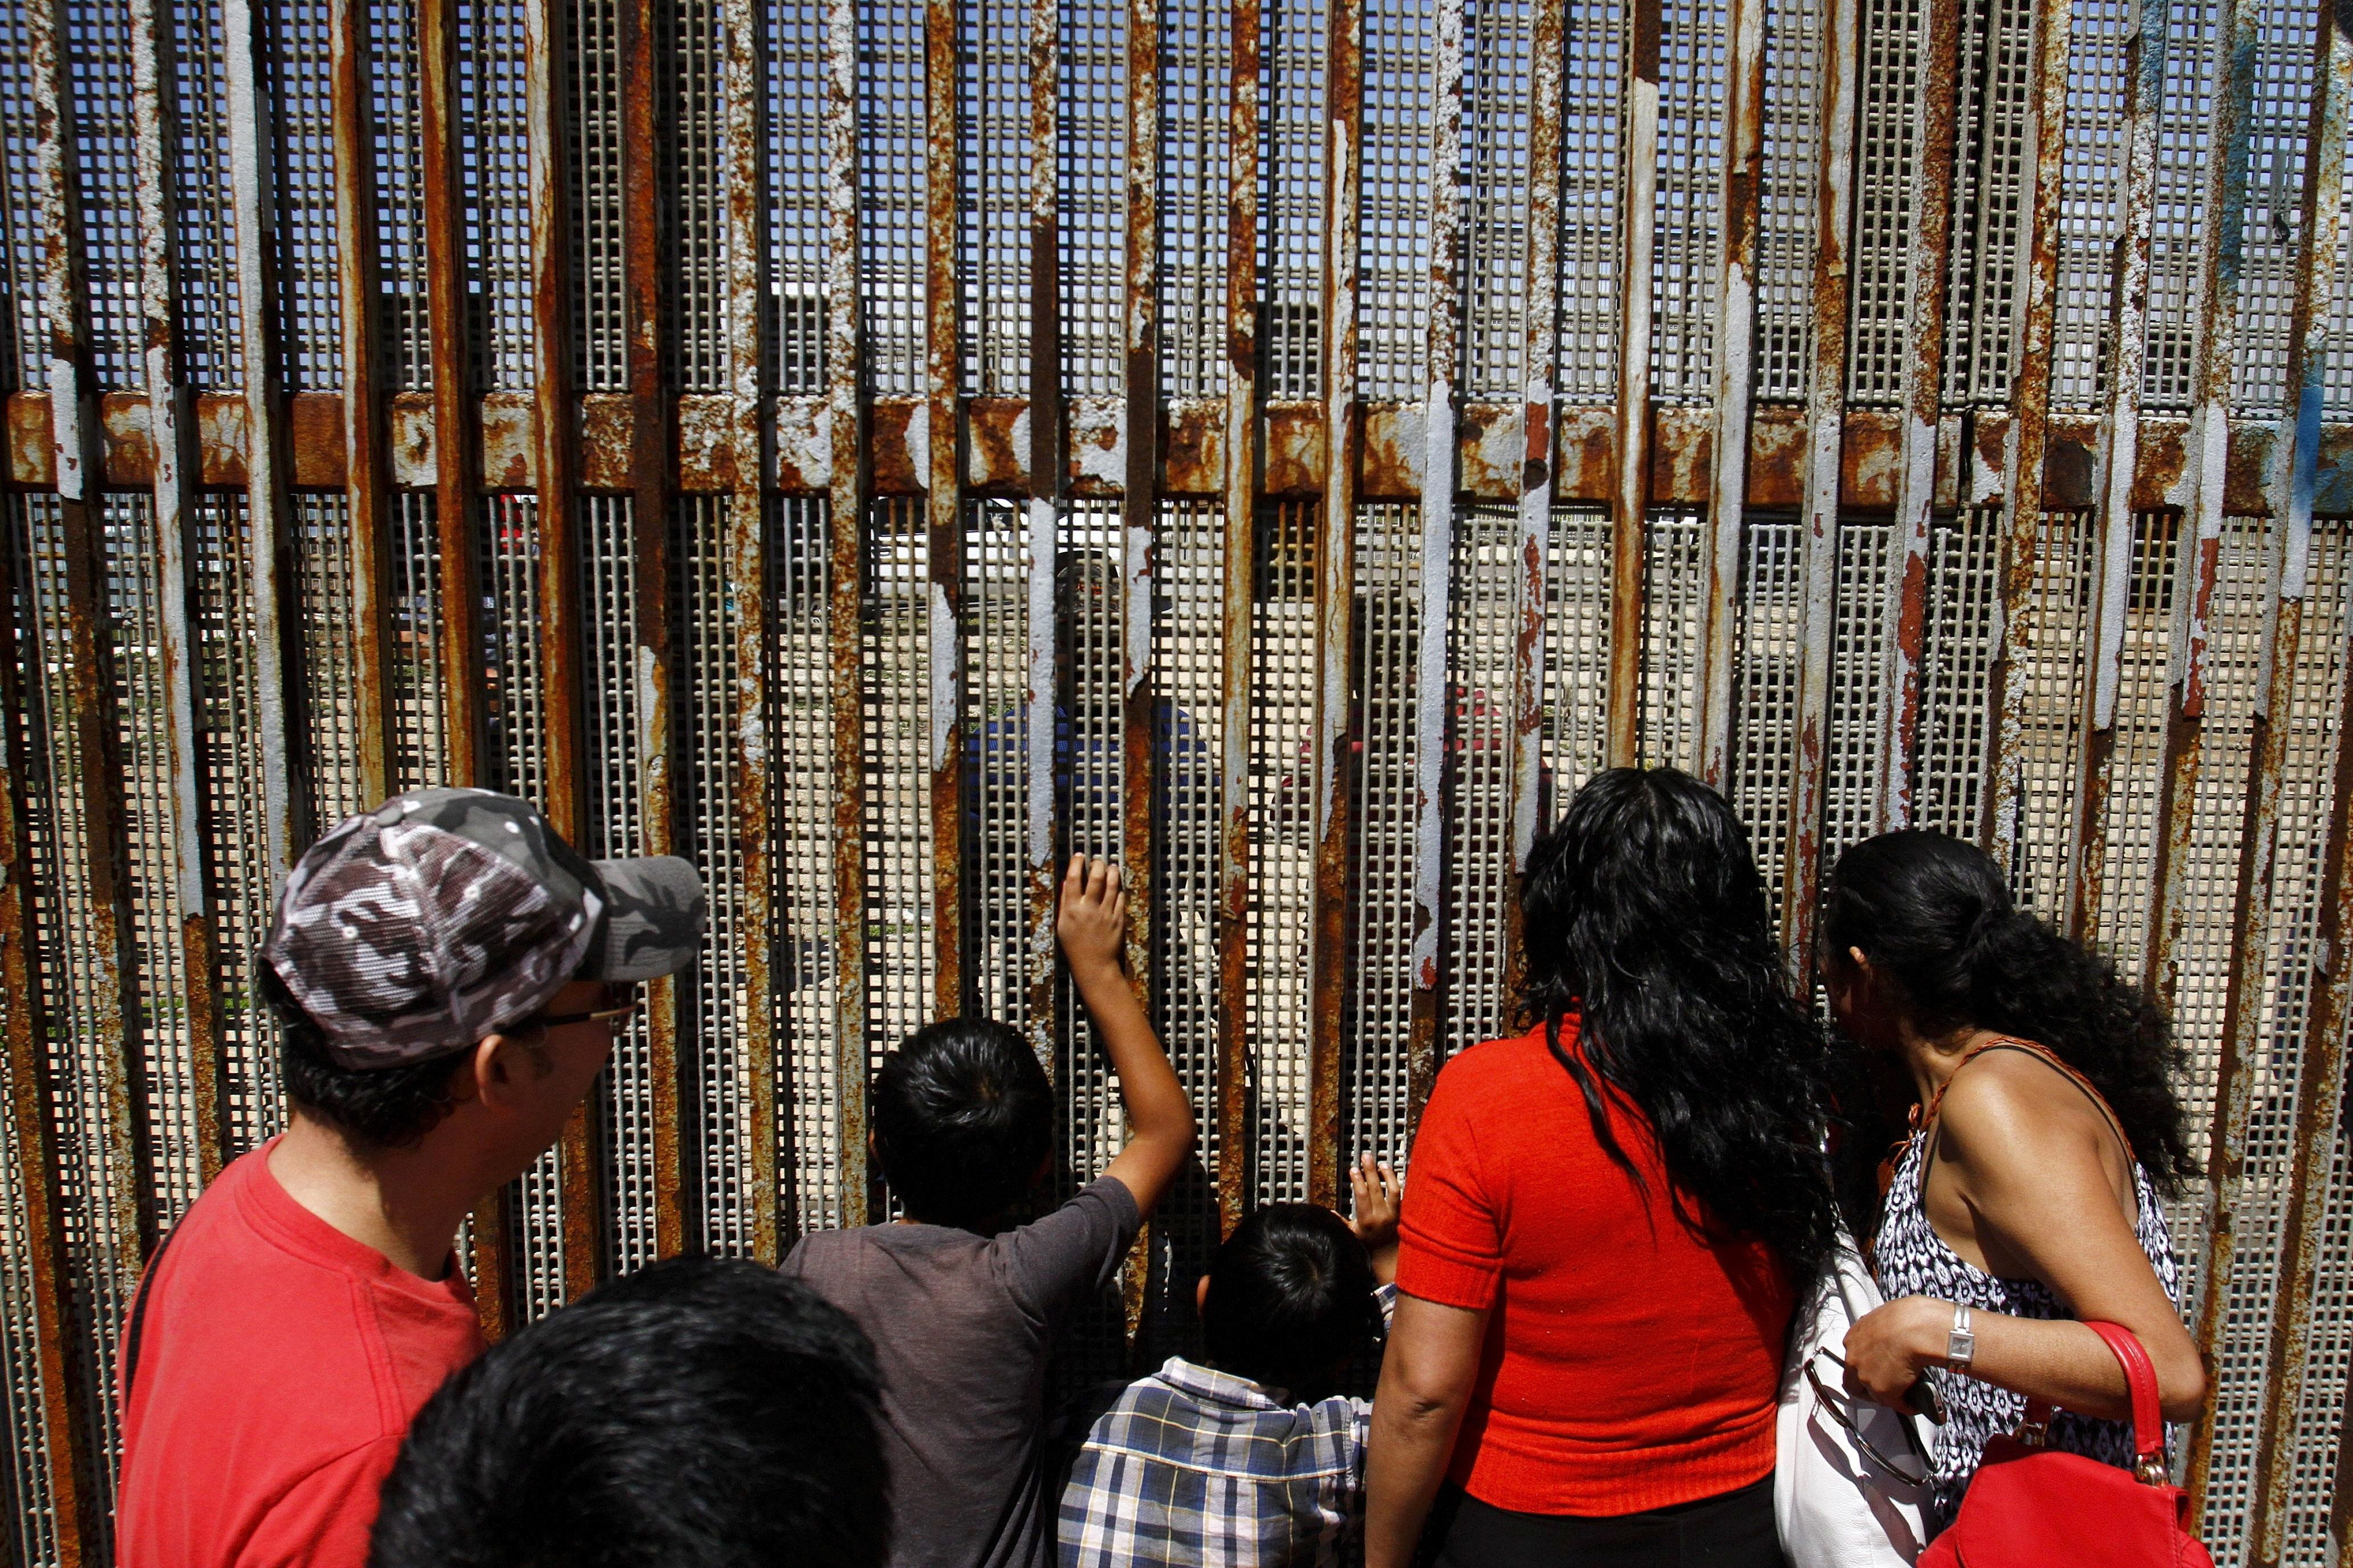 People talk to their relatives at a wall separating Mexico and the United States, as photographed from Playas Tijuana, in Tijuana, Mexico, April 10, 2016. Picture taken April 10, 2016. REUTERS/Jorge Duenes